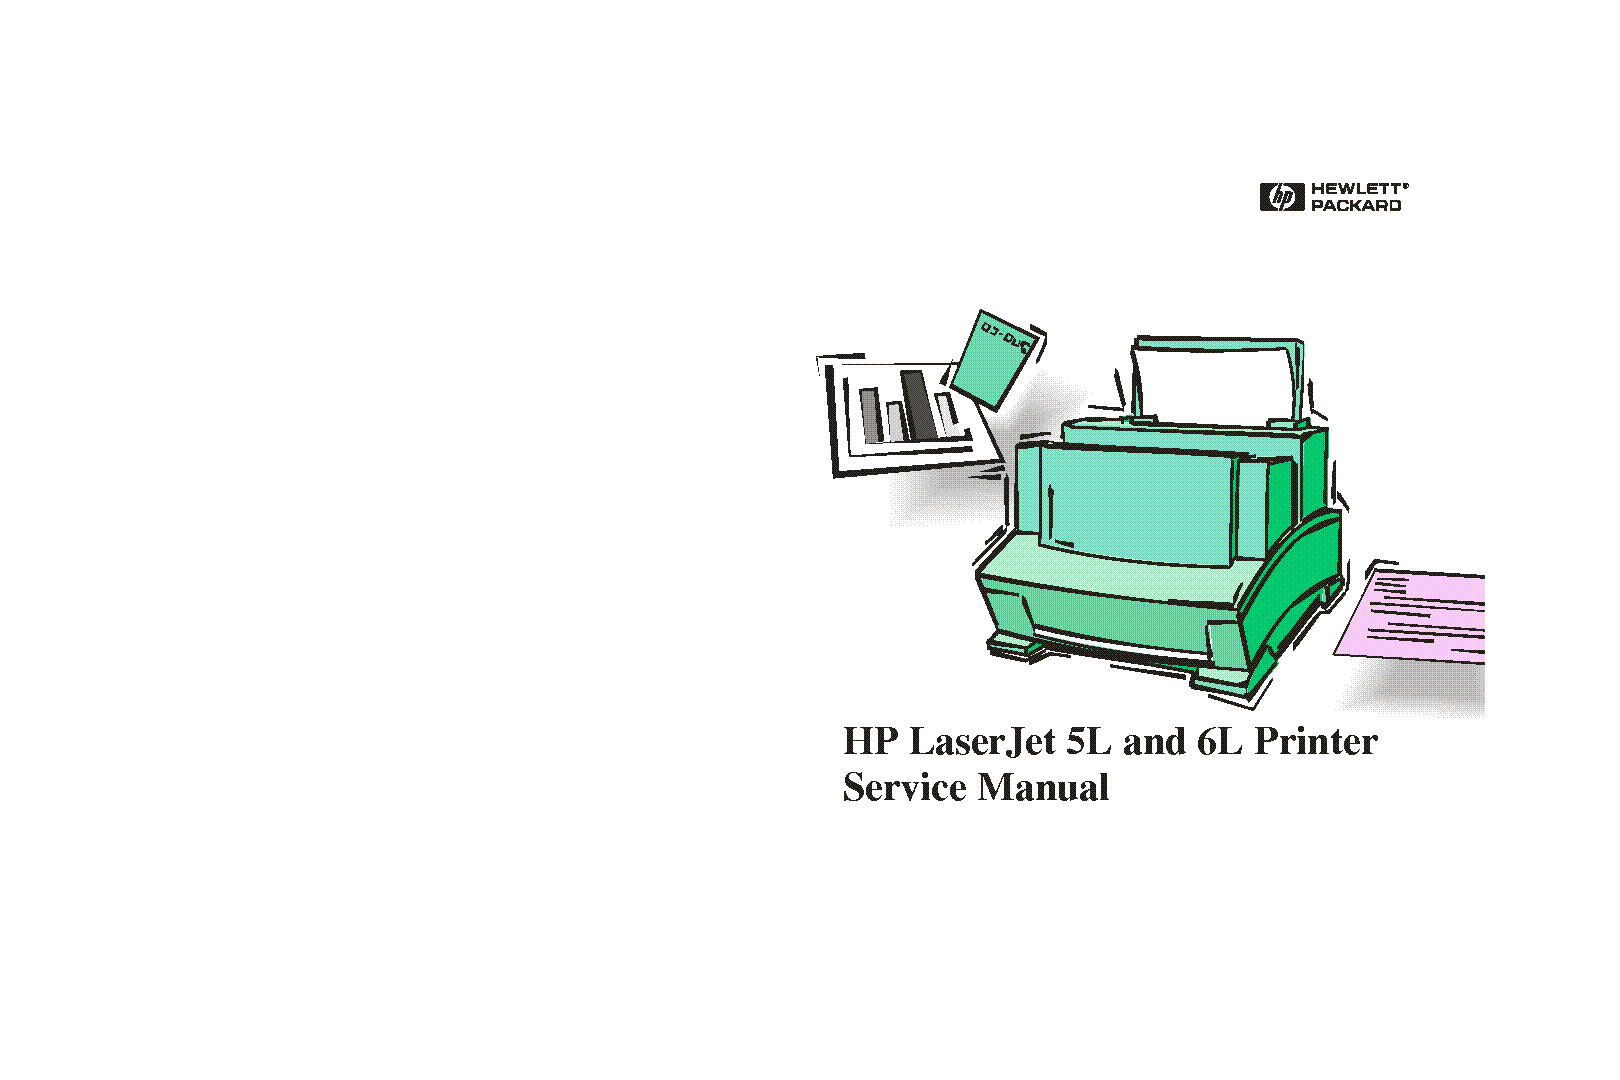 hp laserjet 5l 6l service manual service manual download schematics eeprom repair info for. Black Bedroom Furniture Sets. Home Design Ideas